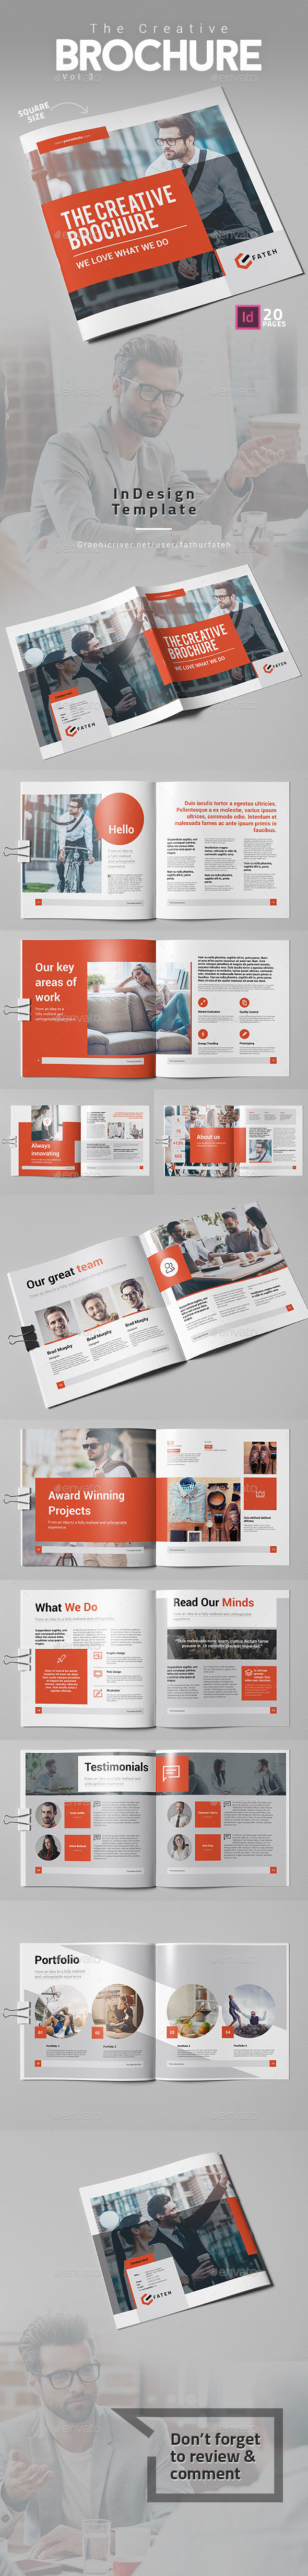 The Creative Brochure Vol.3 Square - Corporate Brochures